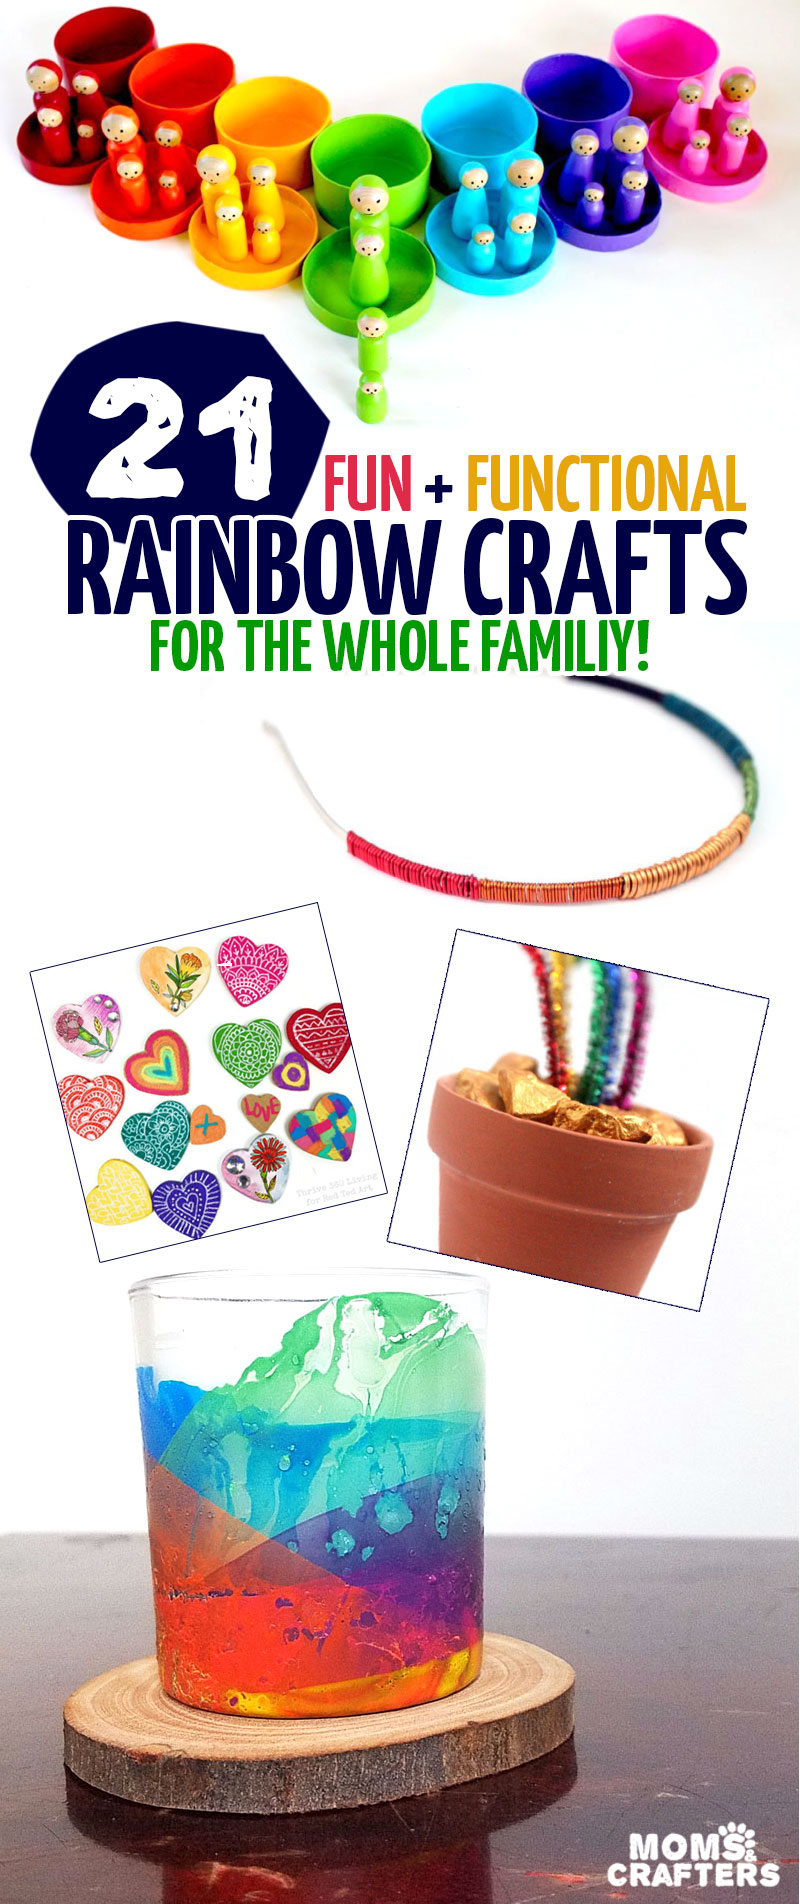 Rainbow Crafts for kids and grown-ups to make! - Moms & Crafters